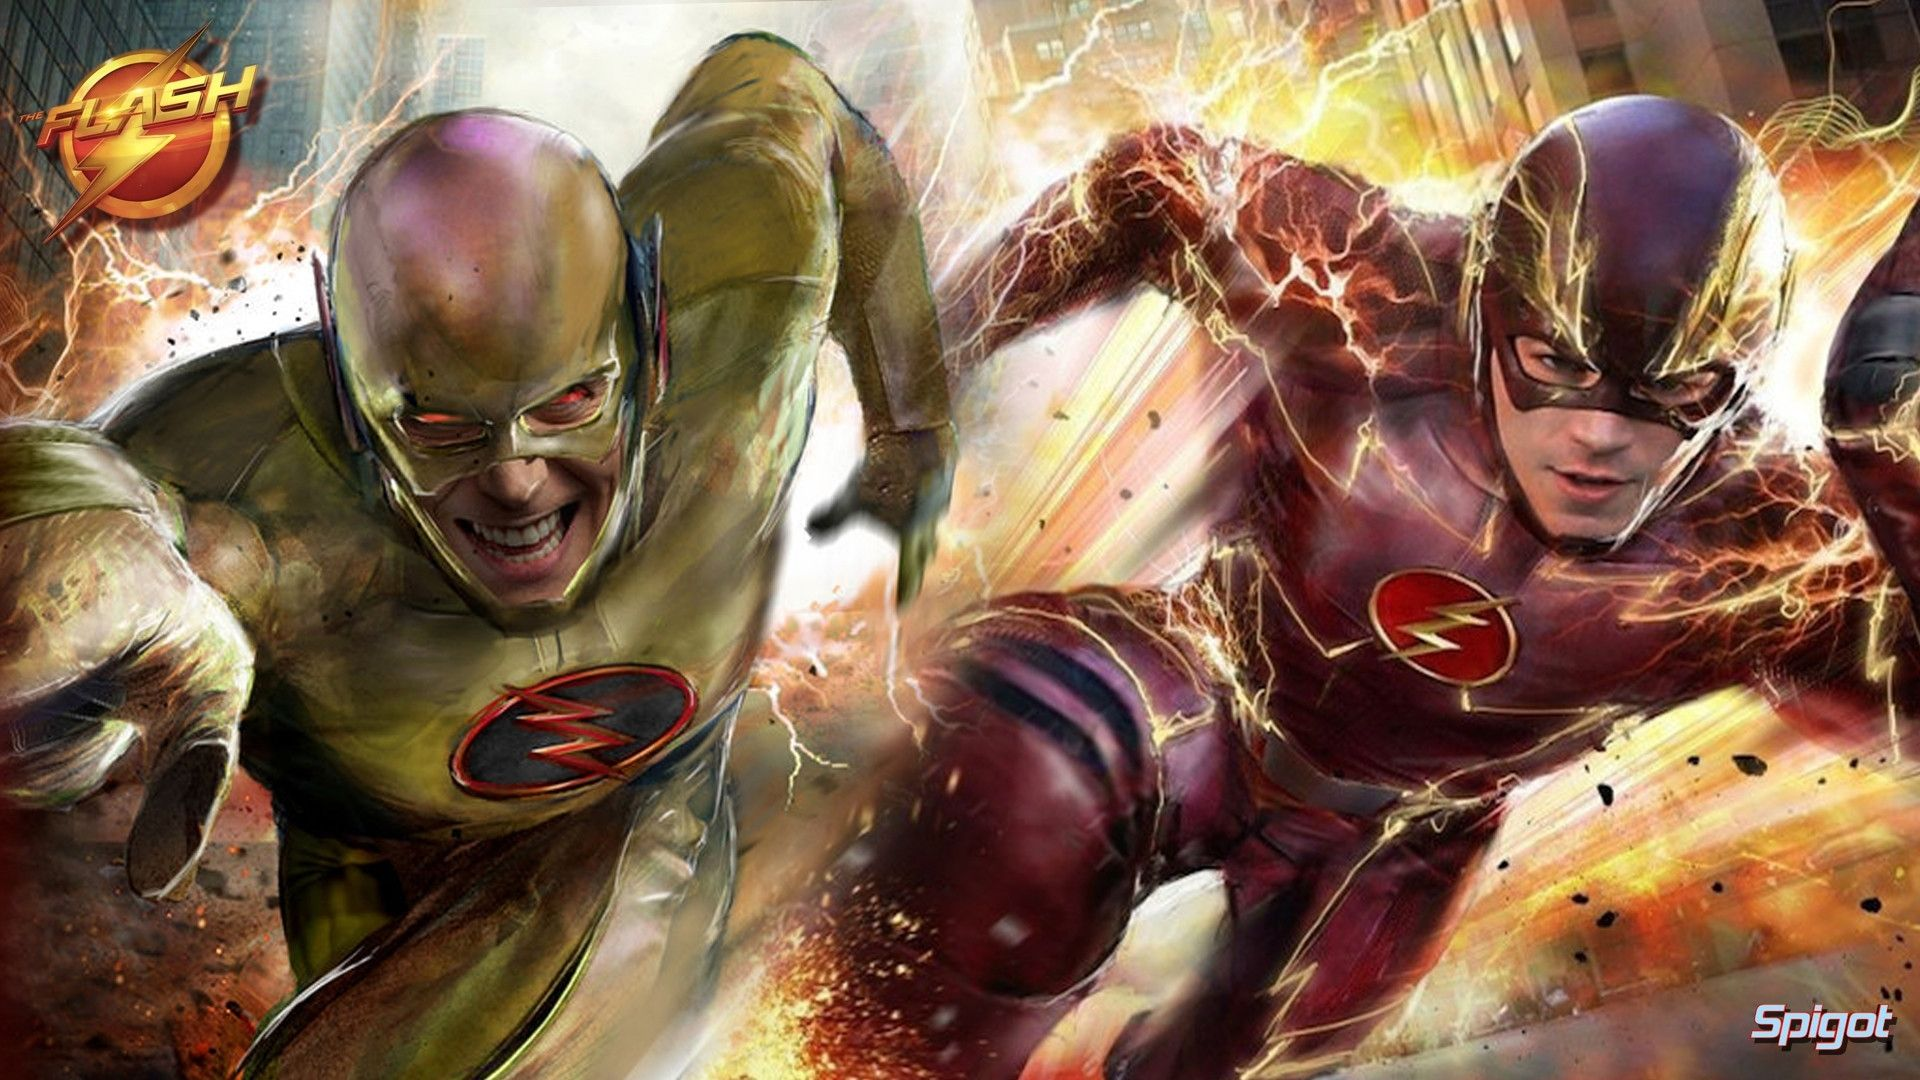 Best Flash Wallpaper 3d: Reverse Flash Wallpapers